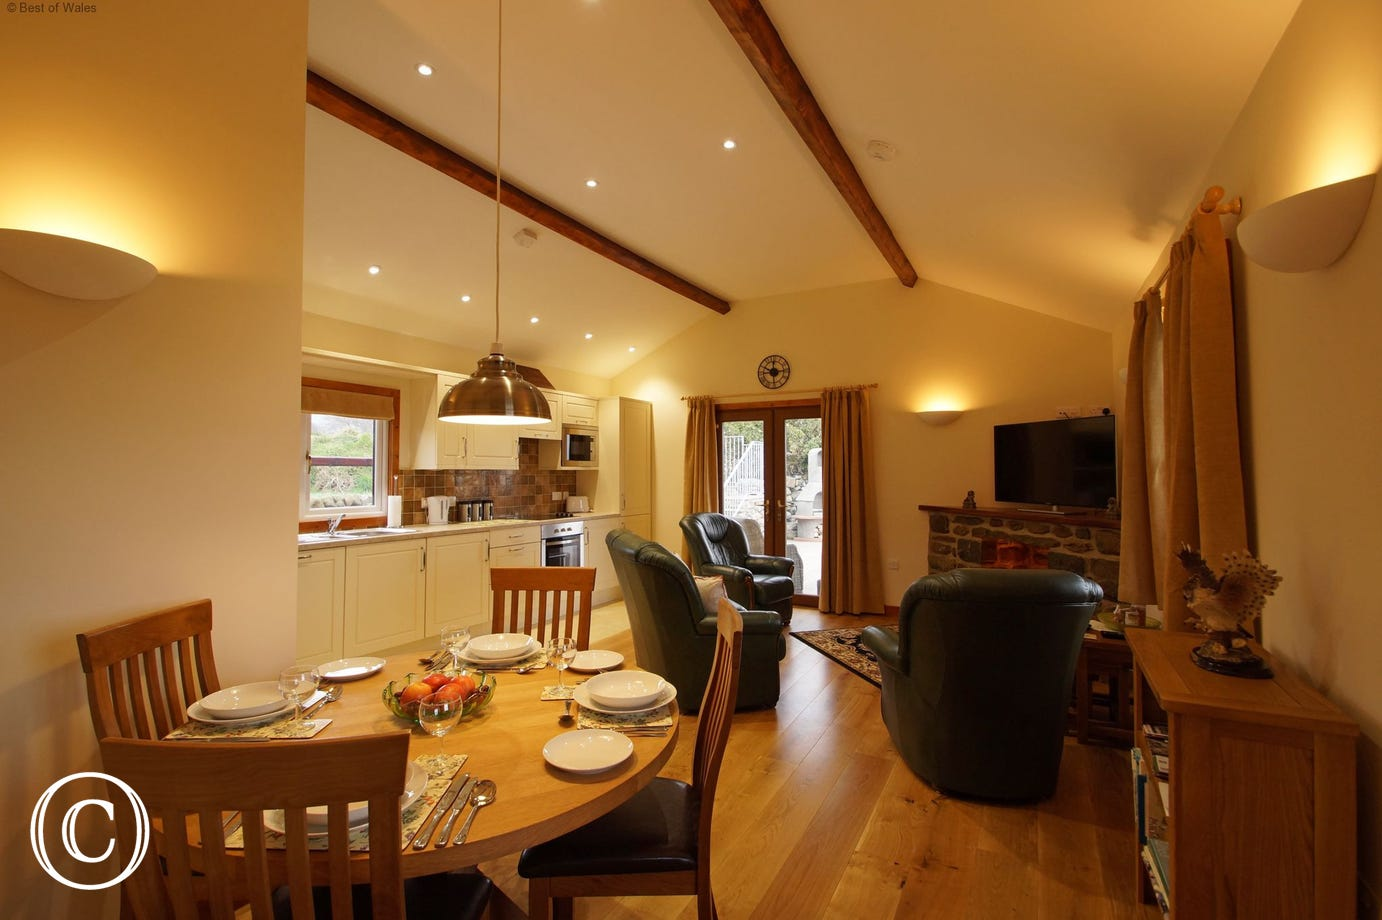 Welcoming lodge with underfloor heating throughout